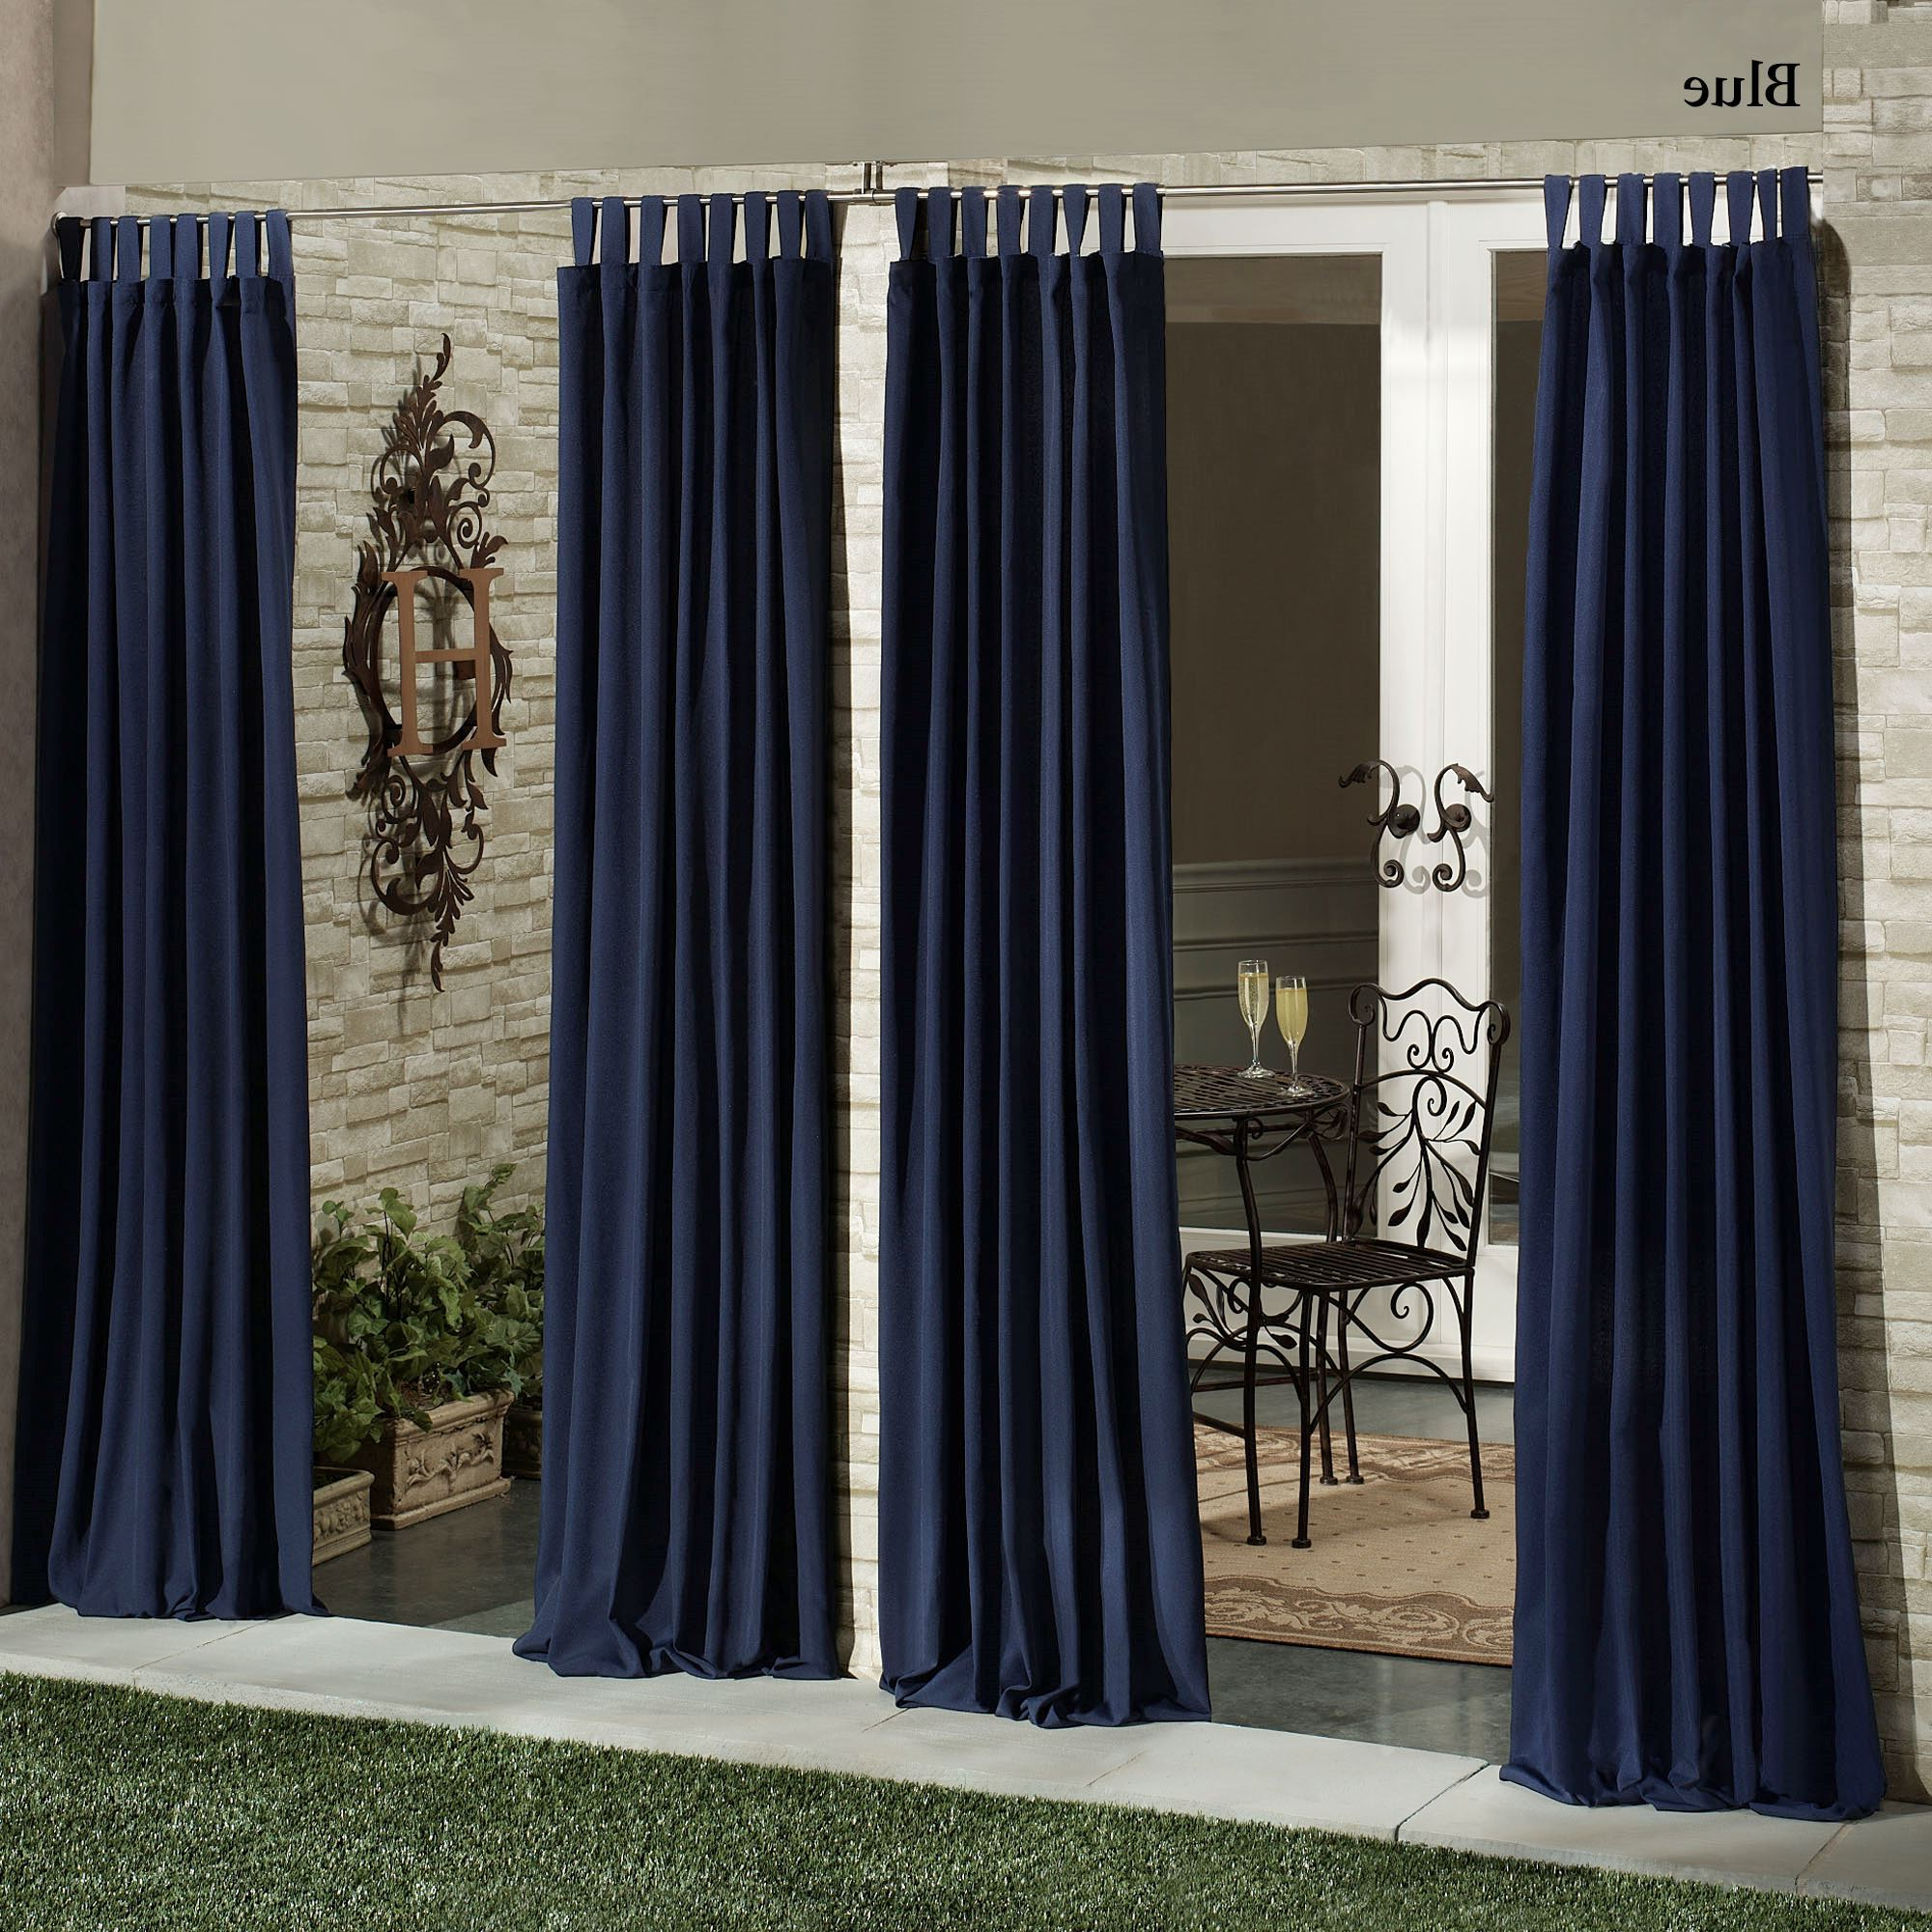 Matine Indoor Outdoor Tab Top Curtain Panels For Well Known Matine Indoor/outdoor Curtain Panels (View 6 of 20)